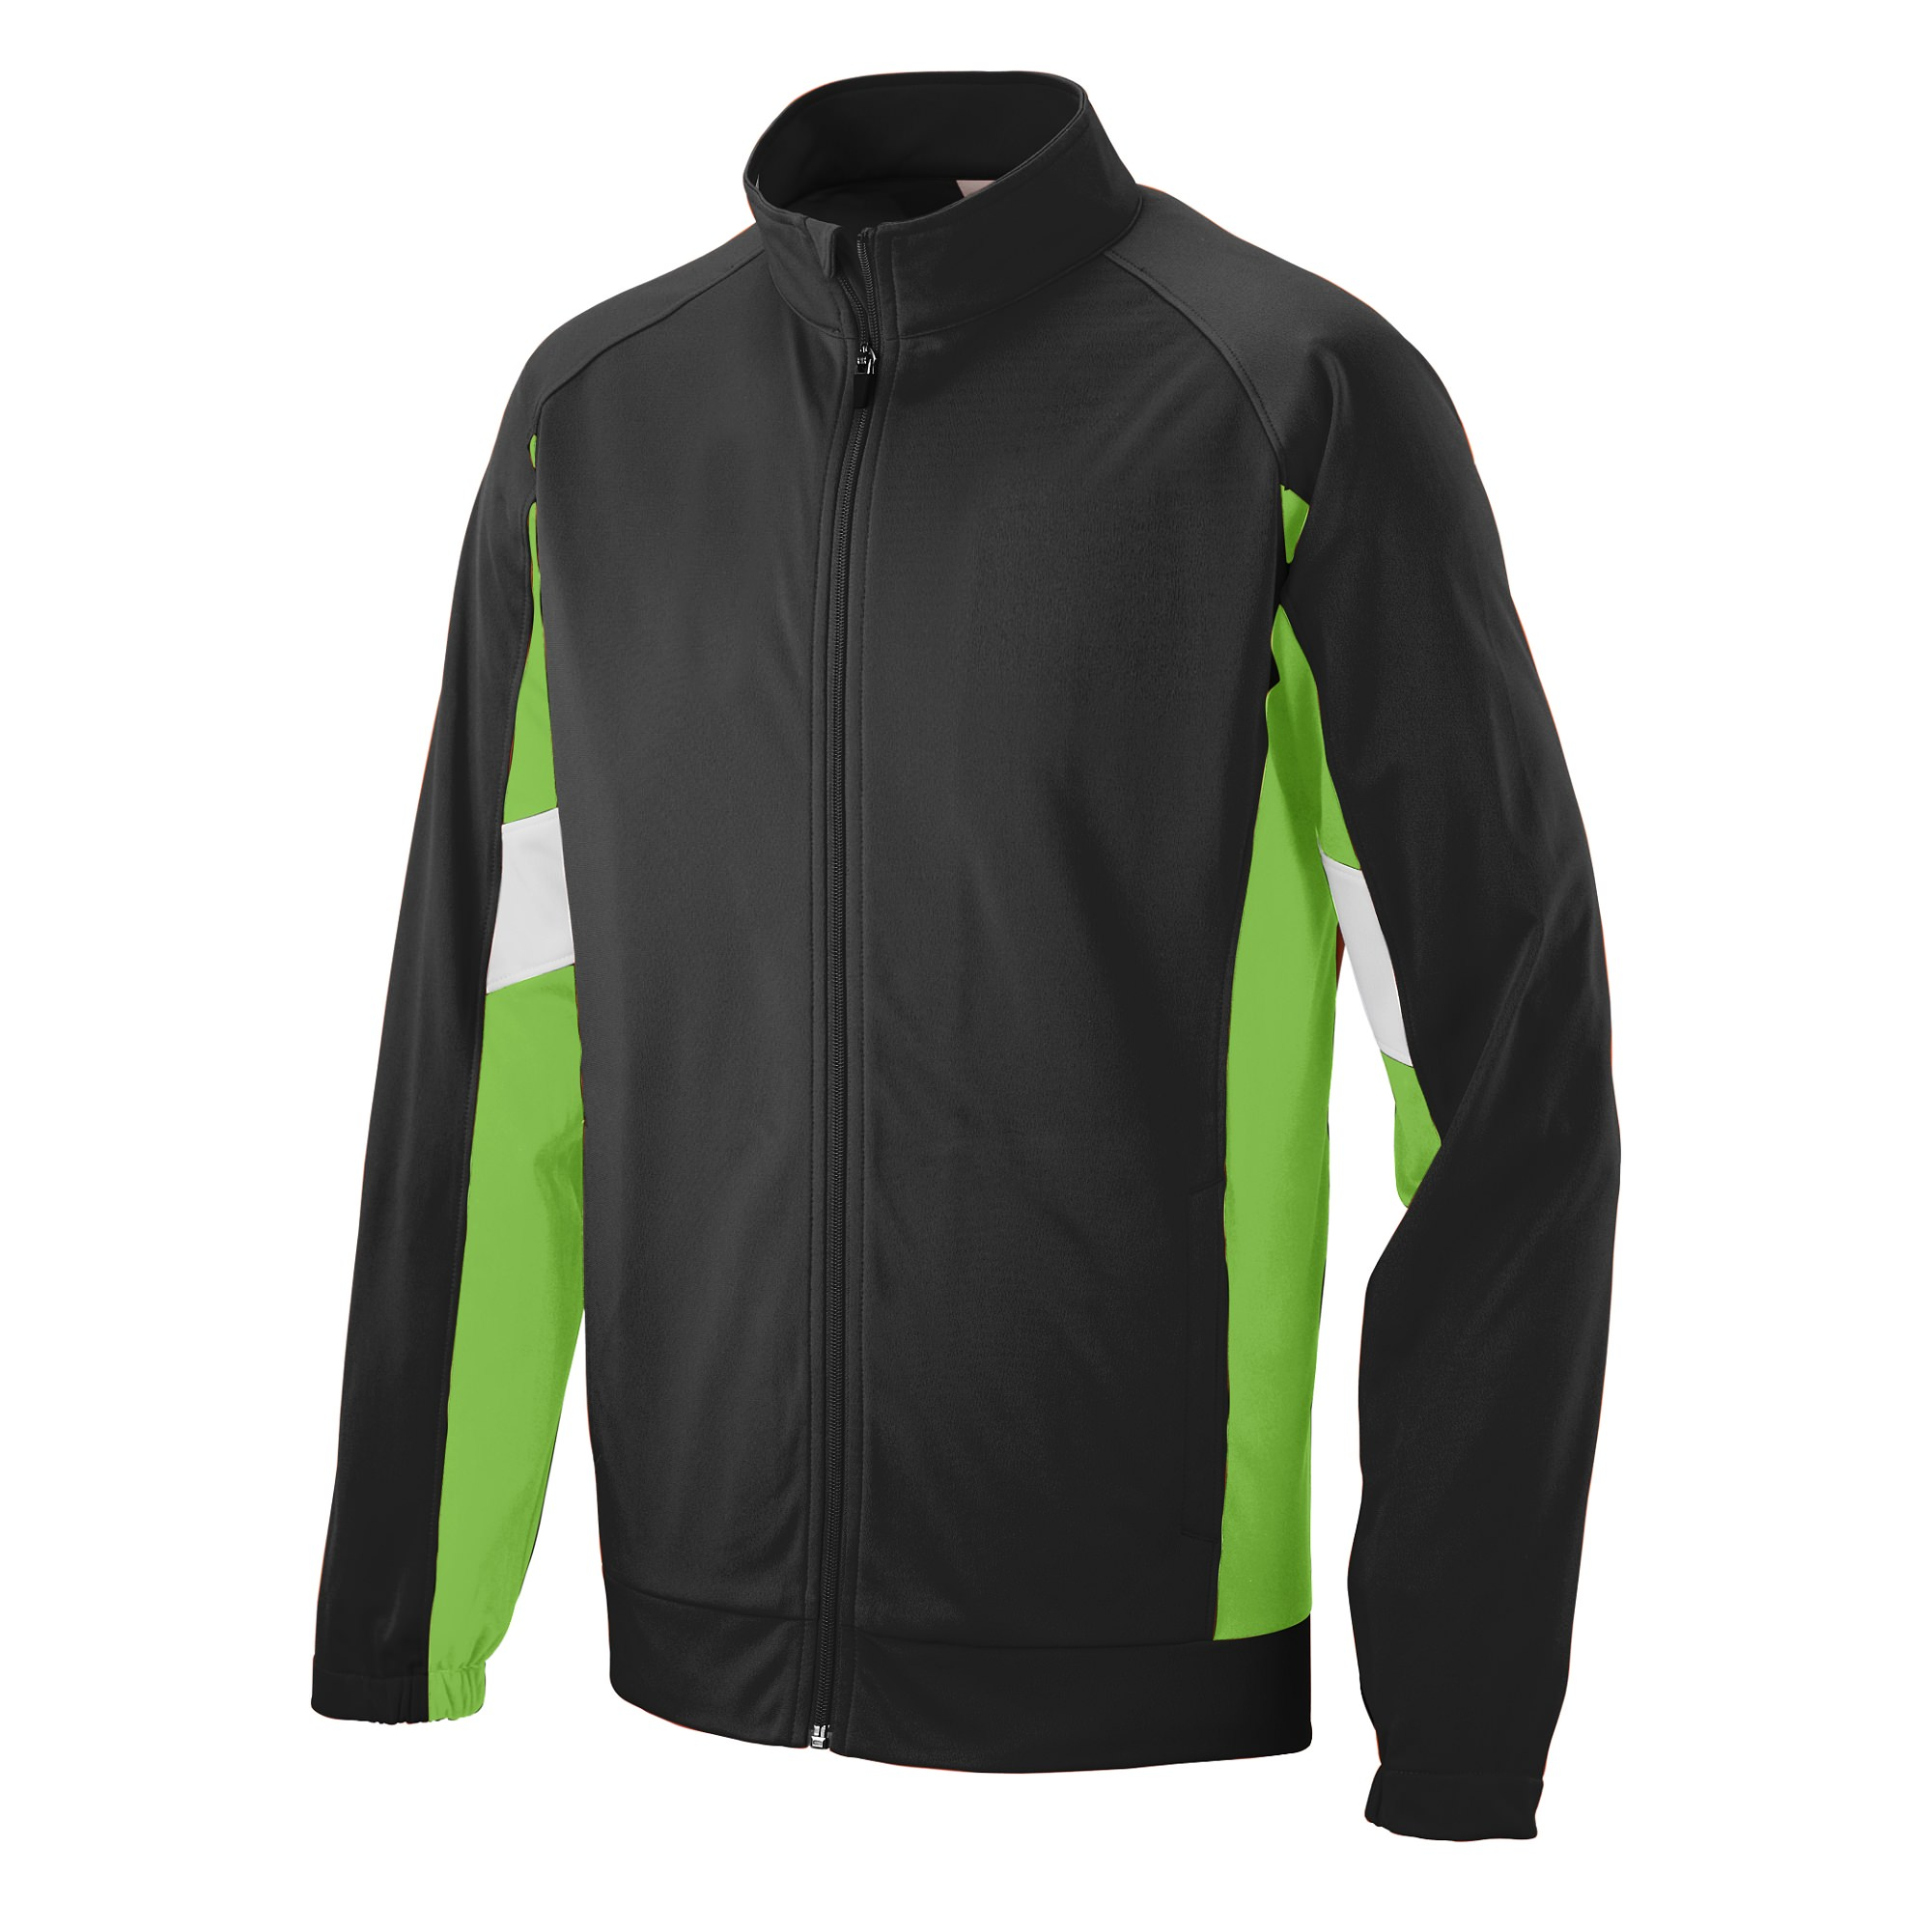 new augusta men Get all your wholesale apparel & team clothing needs online at augusta sportswear find all the latest styles for jerseys, tees, pants & more today.